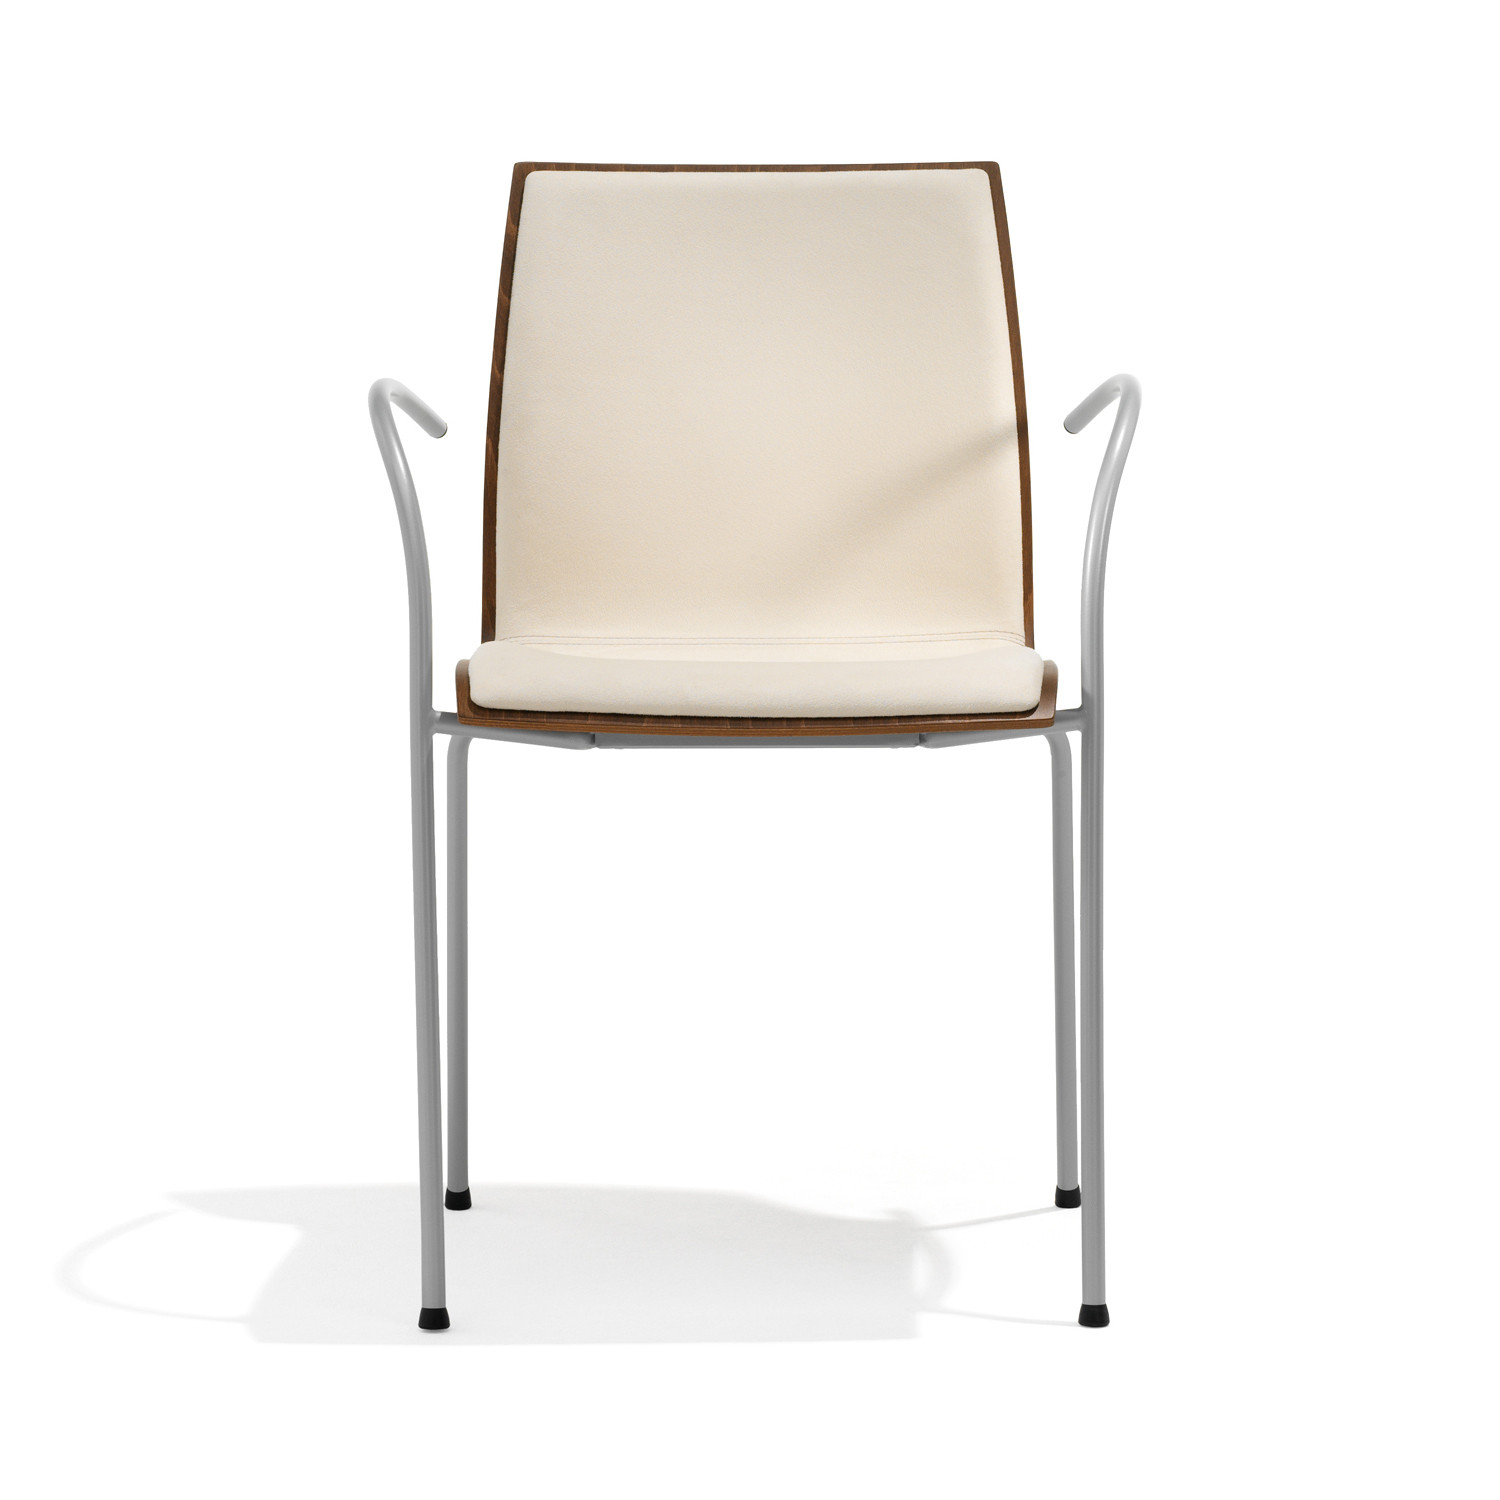 1100 Trio 4-Legged Armchair with Upholstered Seat Shell